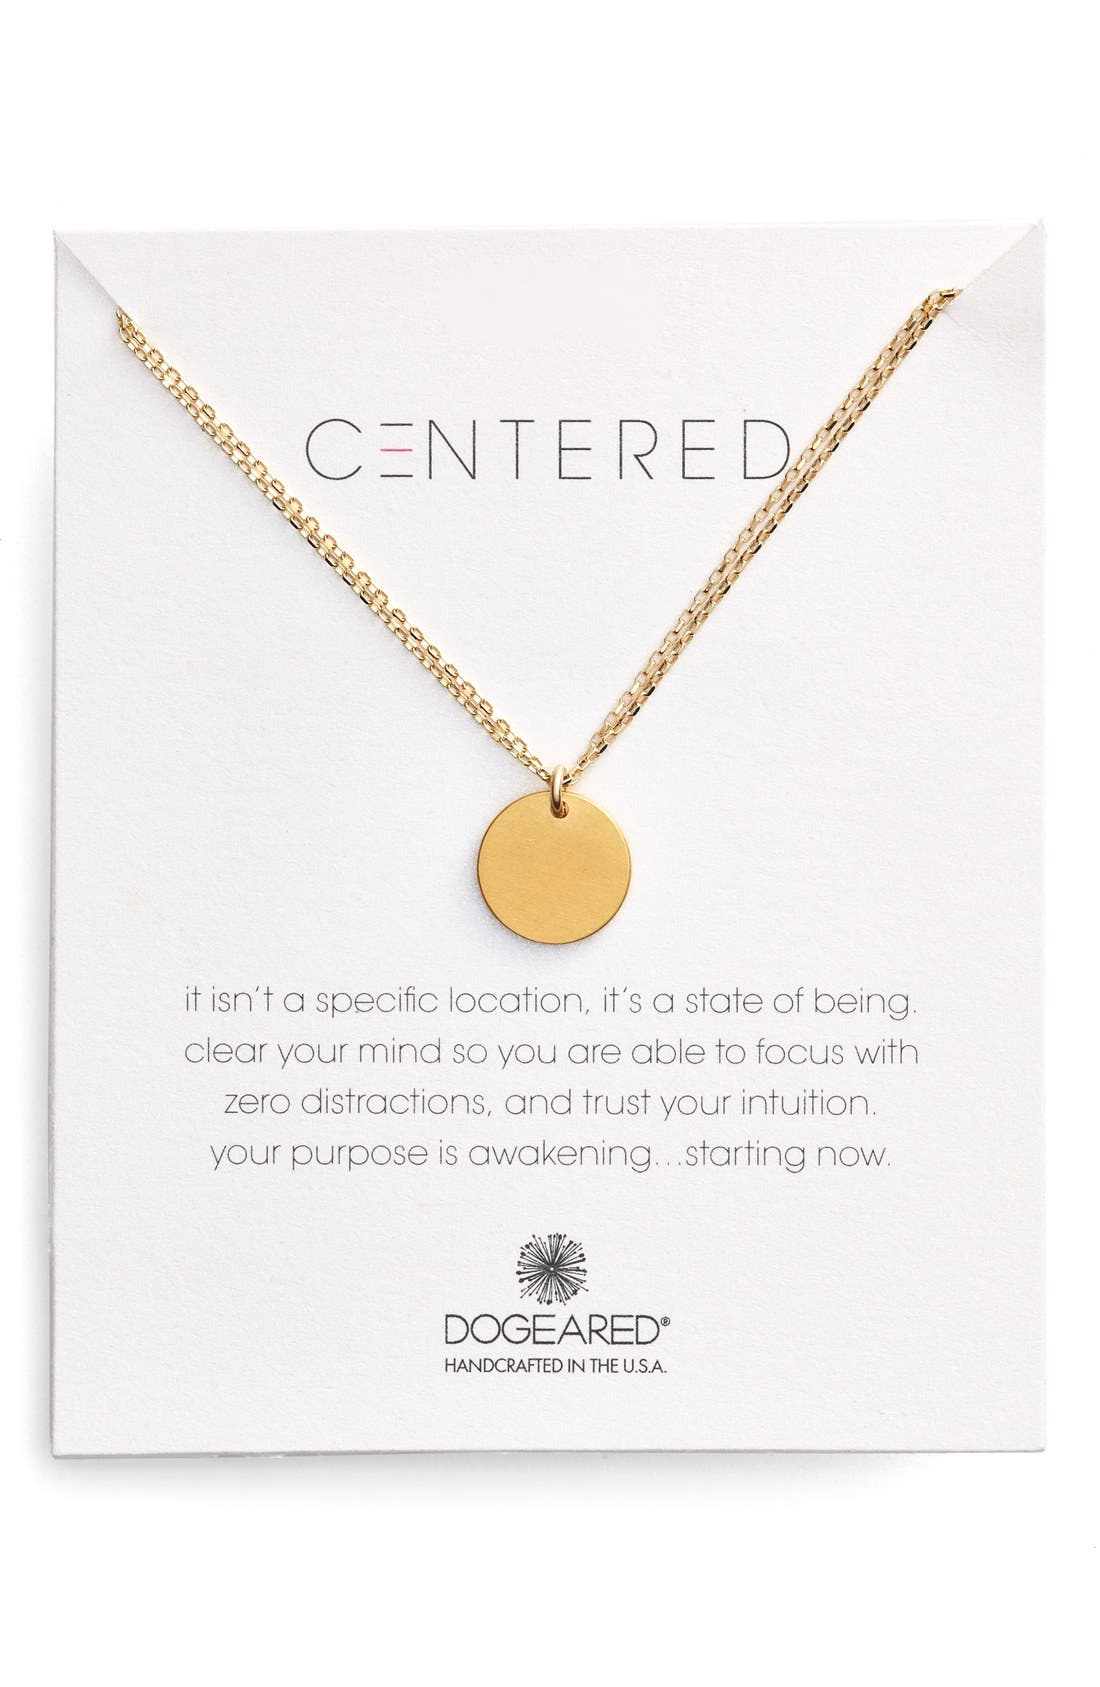 Main Image - Dogeared 'Centered' Large Circle Charm Necklace